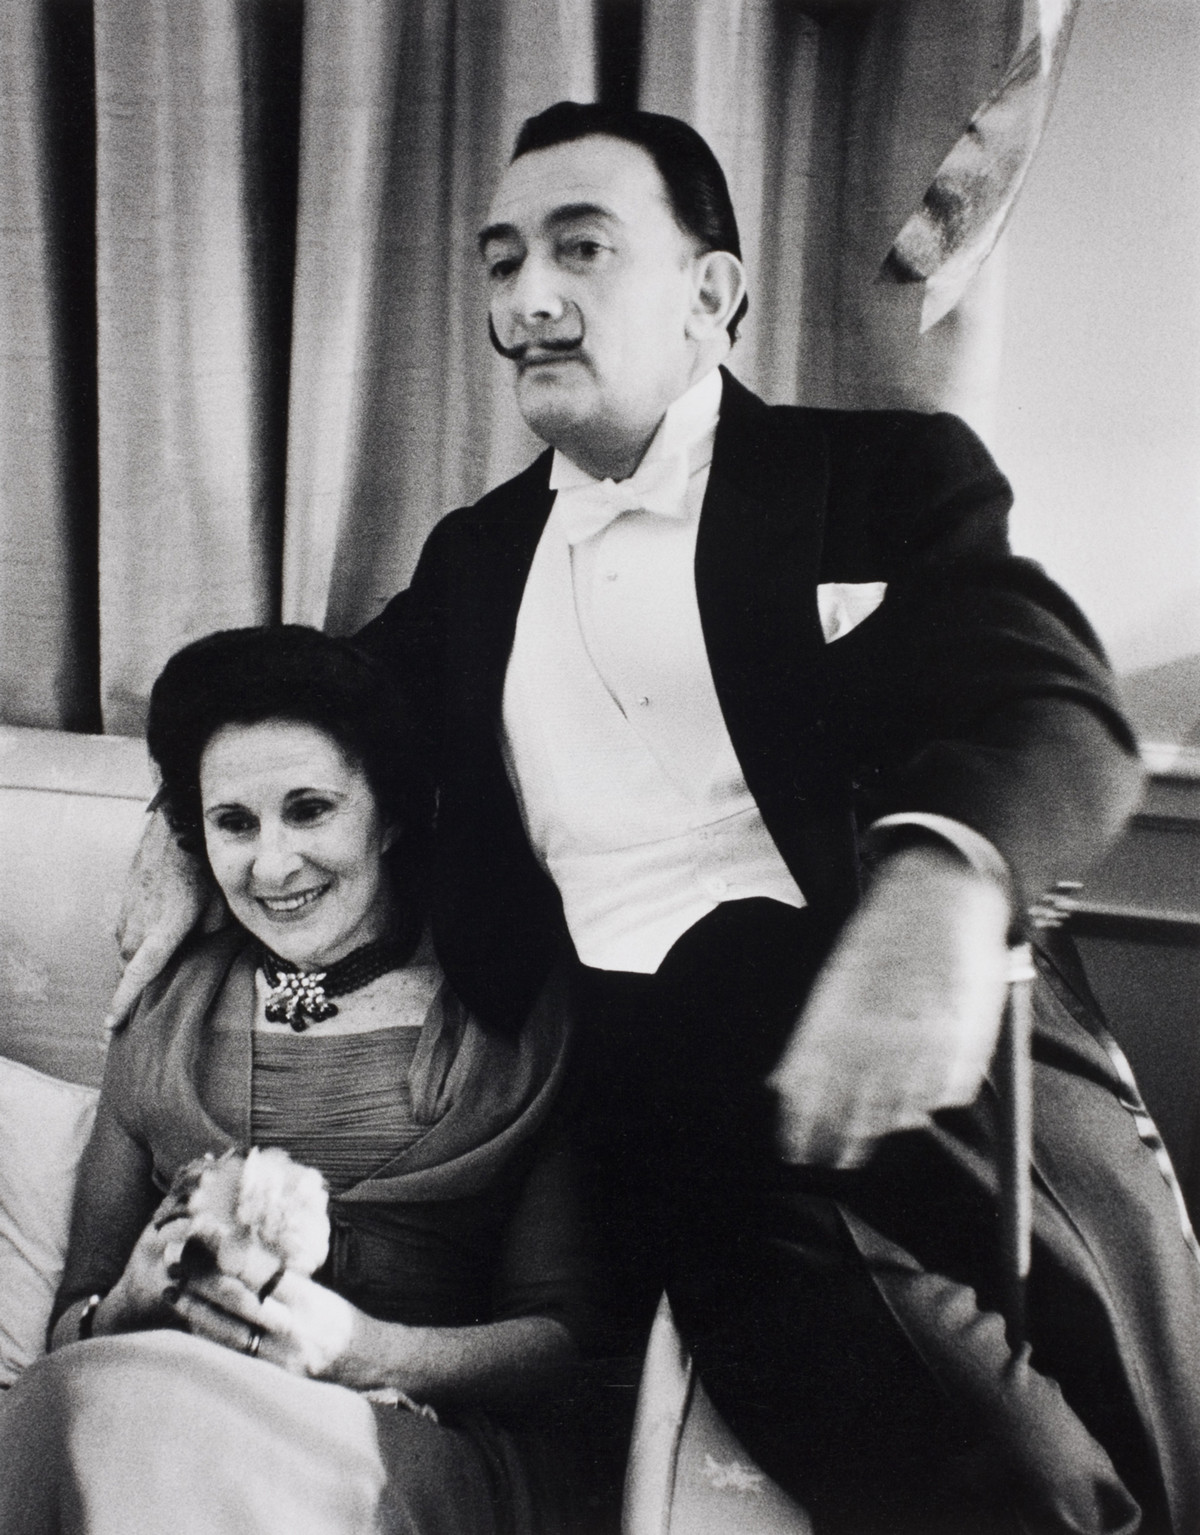 Salvador Dali with his wife at a New Year's party in New York, January 1956.